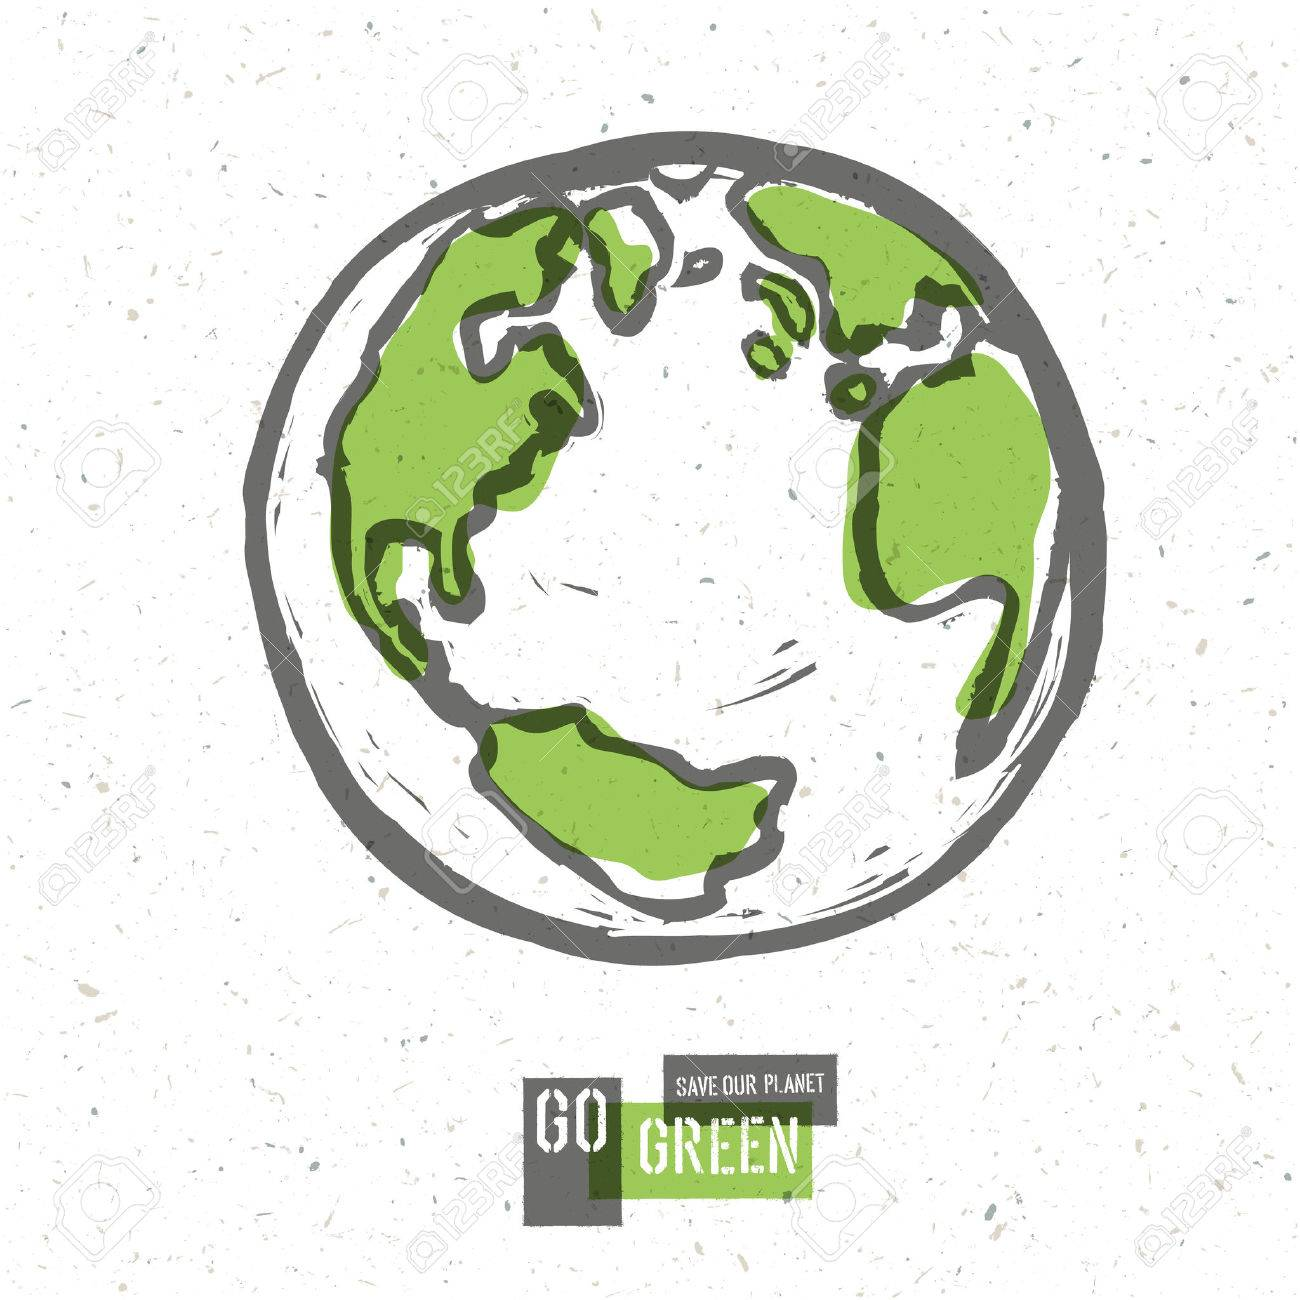 Go Green Concept Poster With Earth. Vector - 33733020